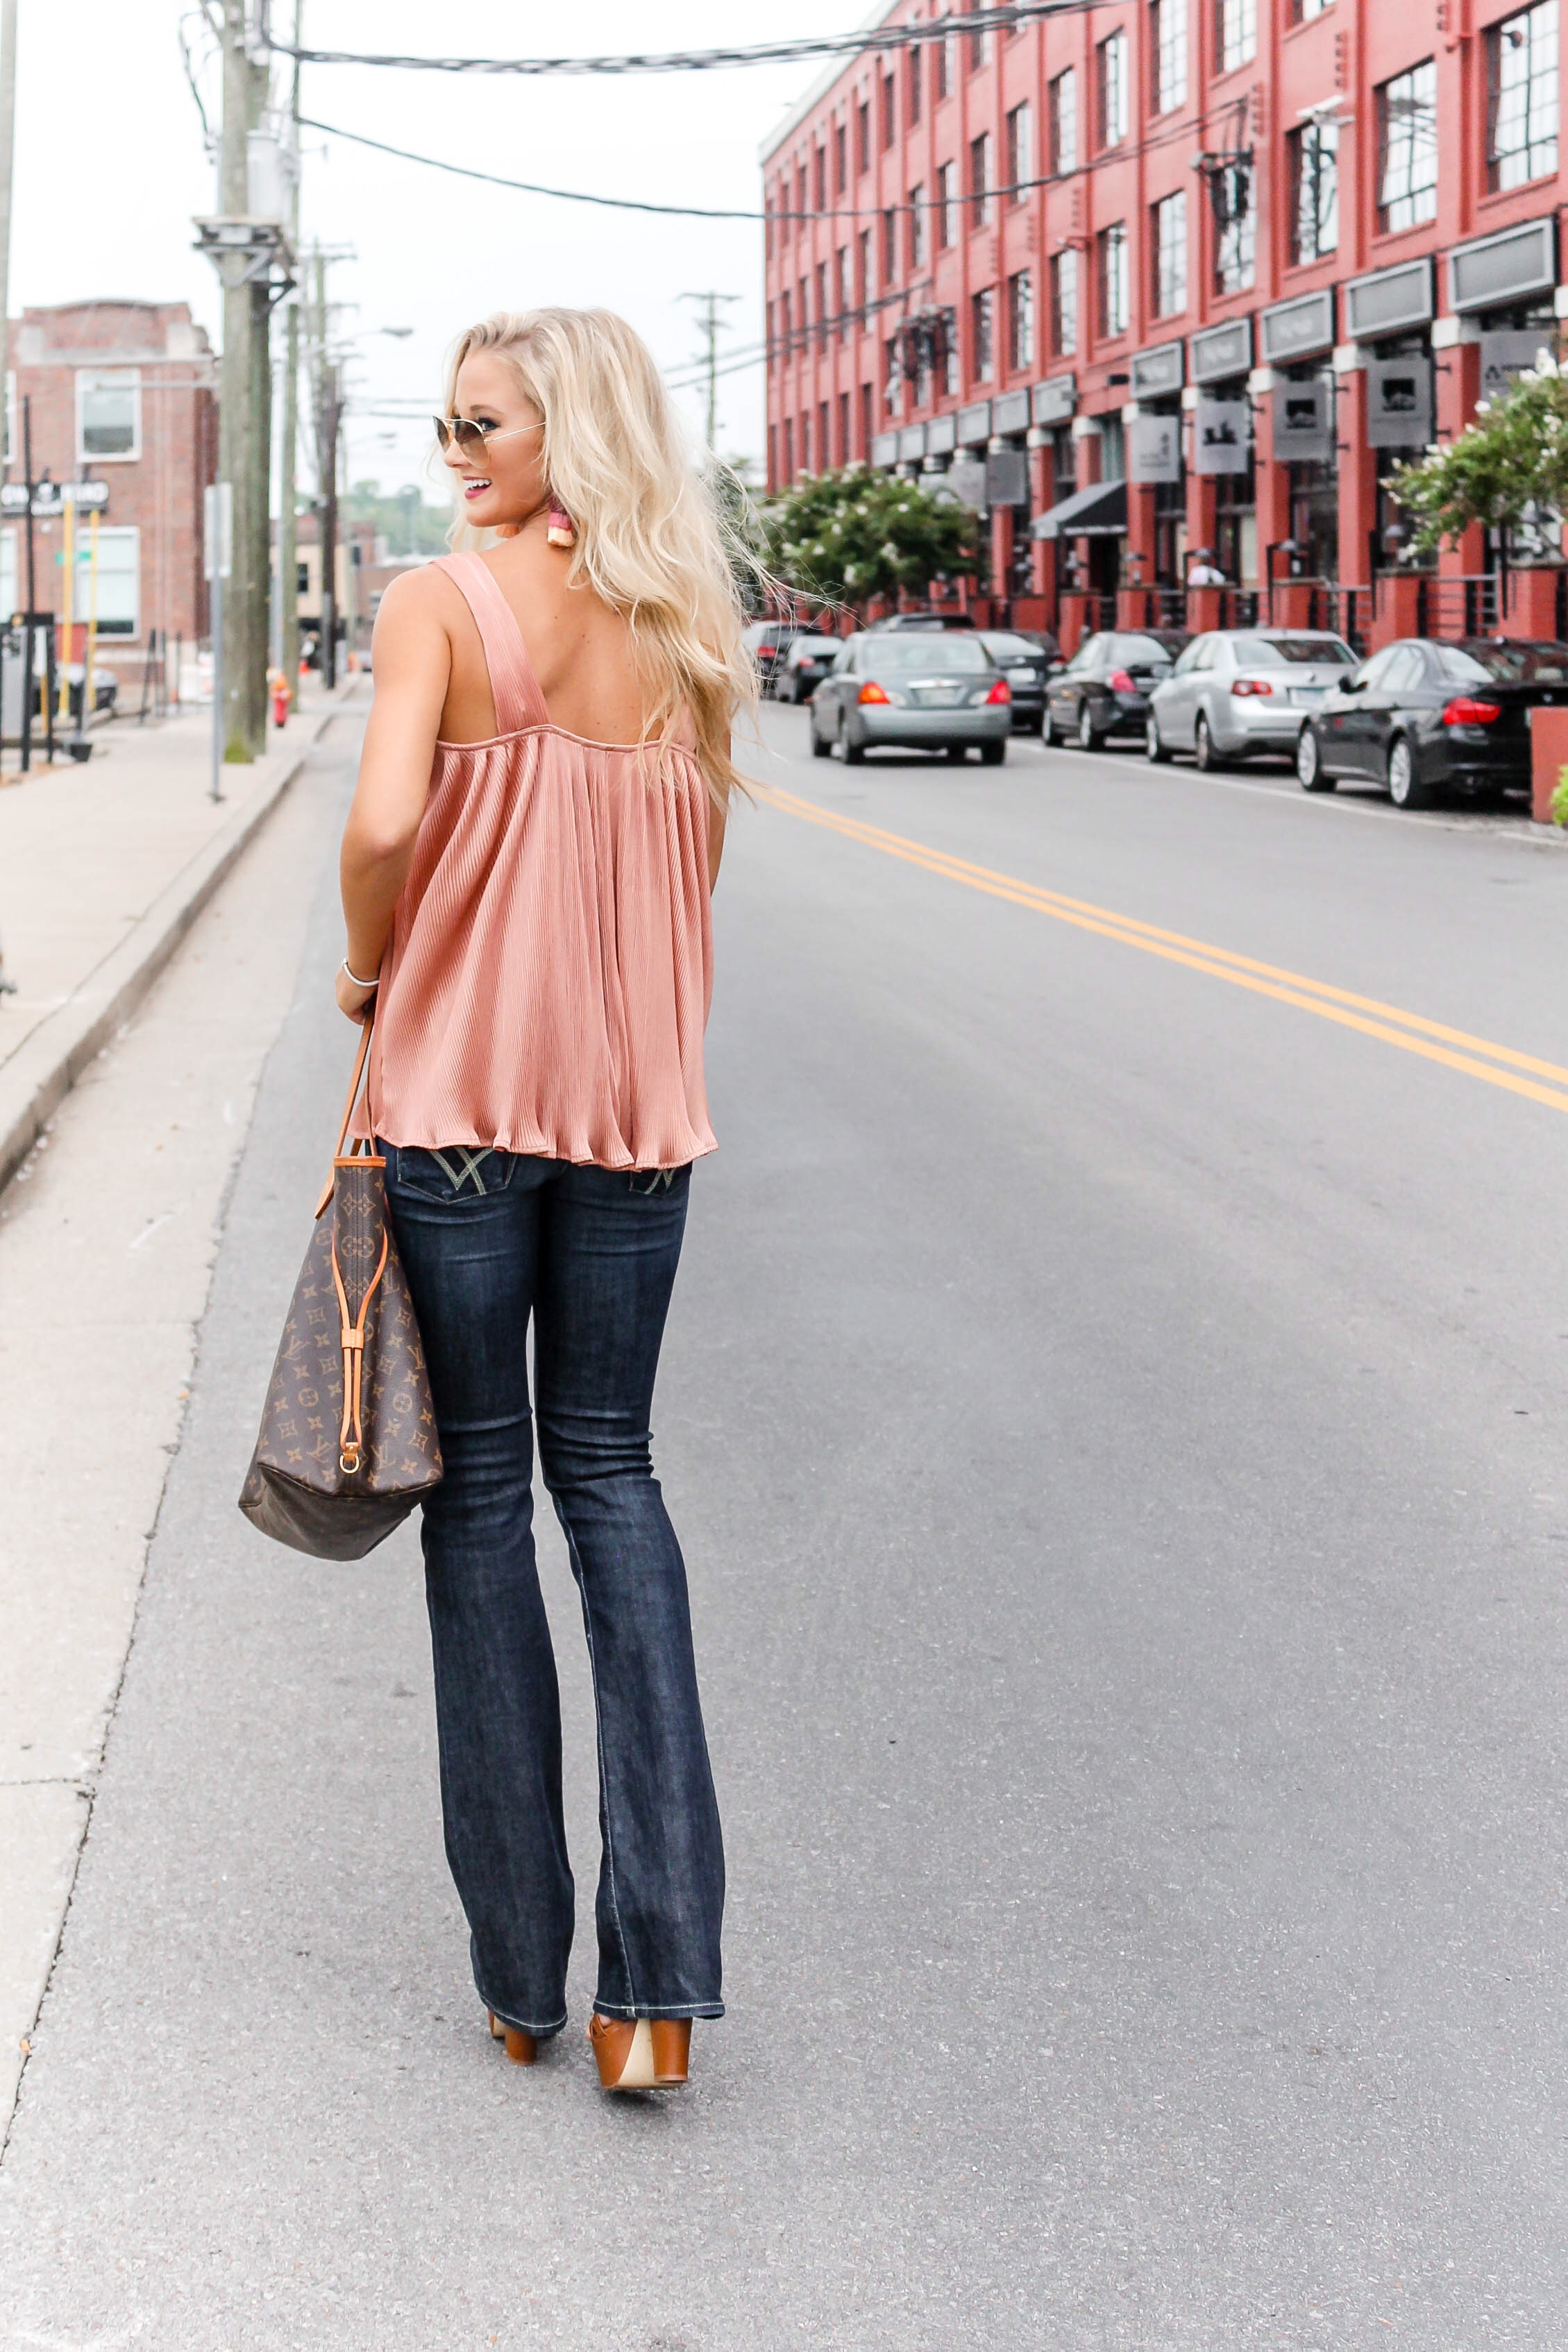 Transitioning Into Fall with My Kind Of Lovely | love 'n' labels www.lovenlabels.com